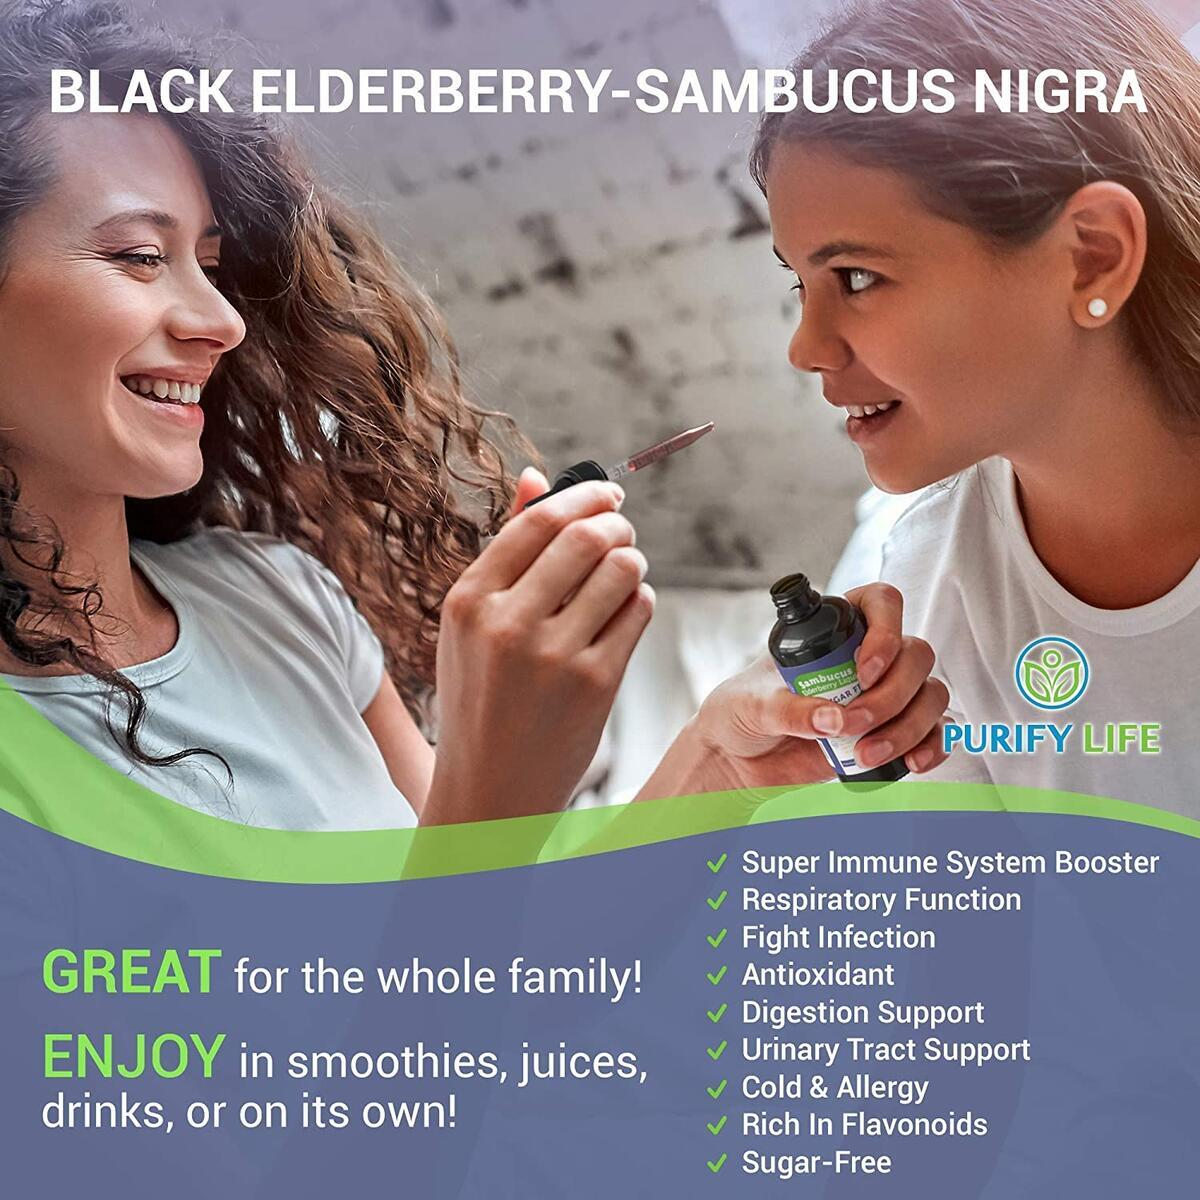 Organic Elderberry Syrup For Kids & Adults [Double Strength] - Seasonal Immune System Support - Tasty Berry Liquid To Fight Cold, Cough, and Allergy This Winter